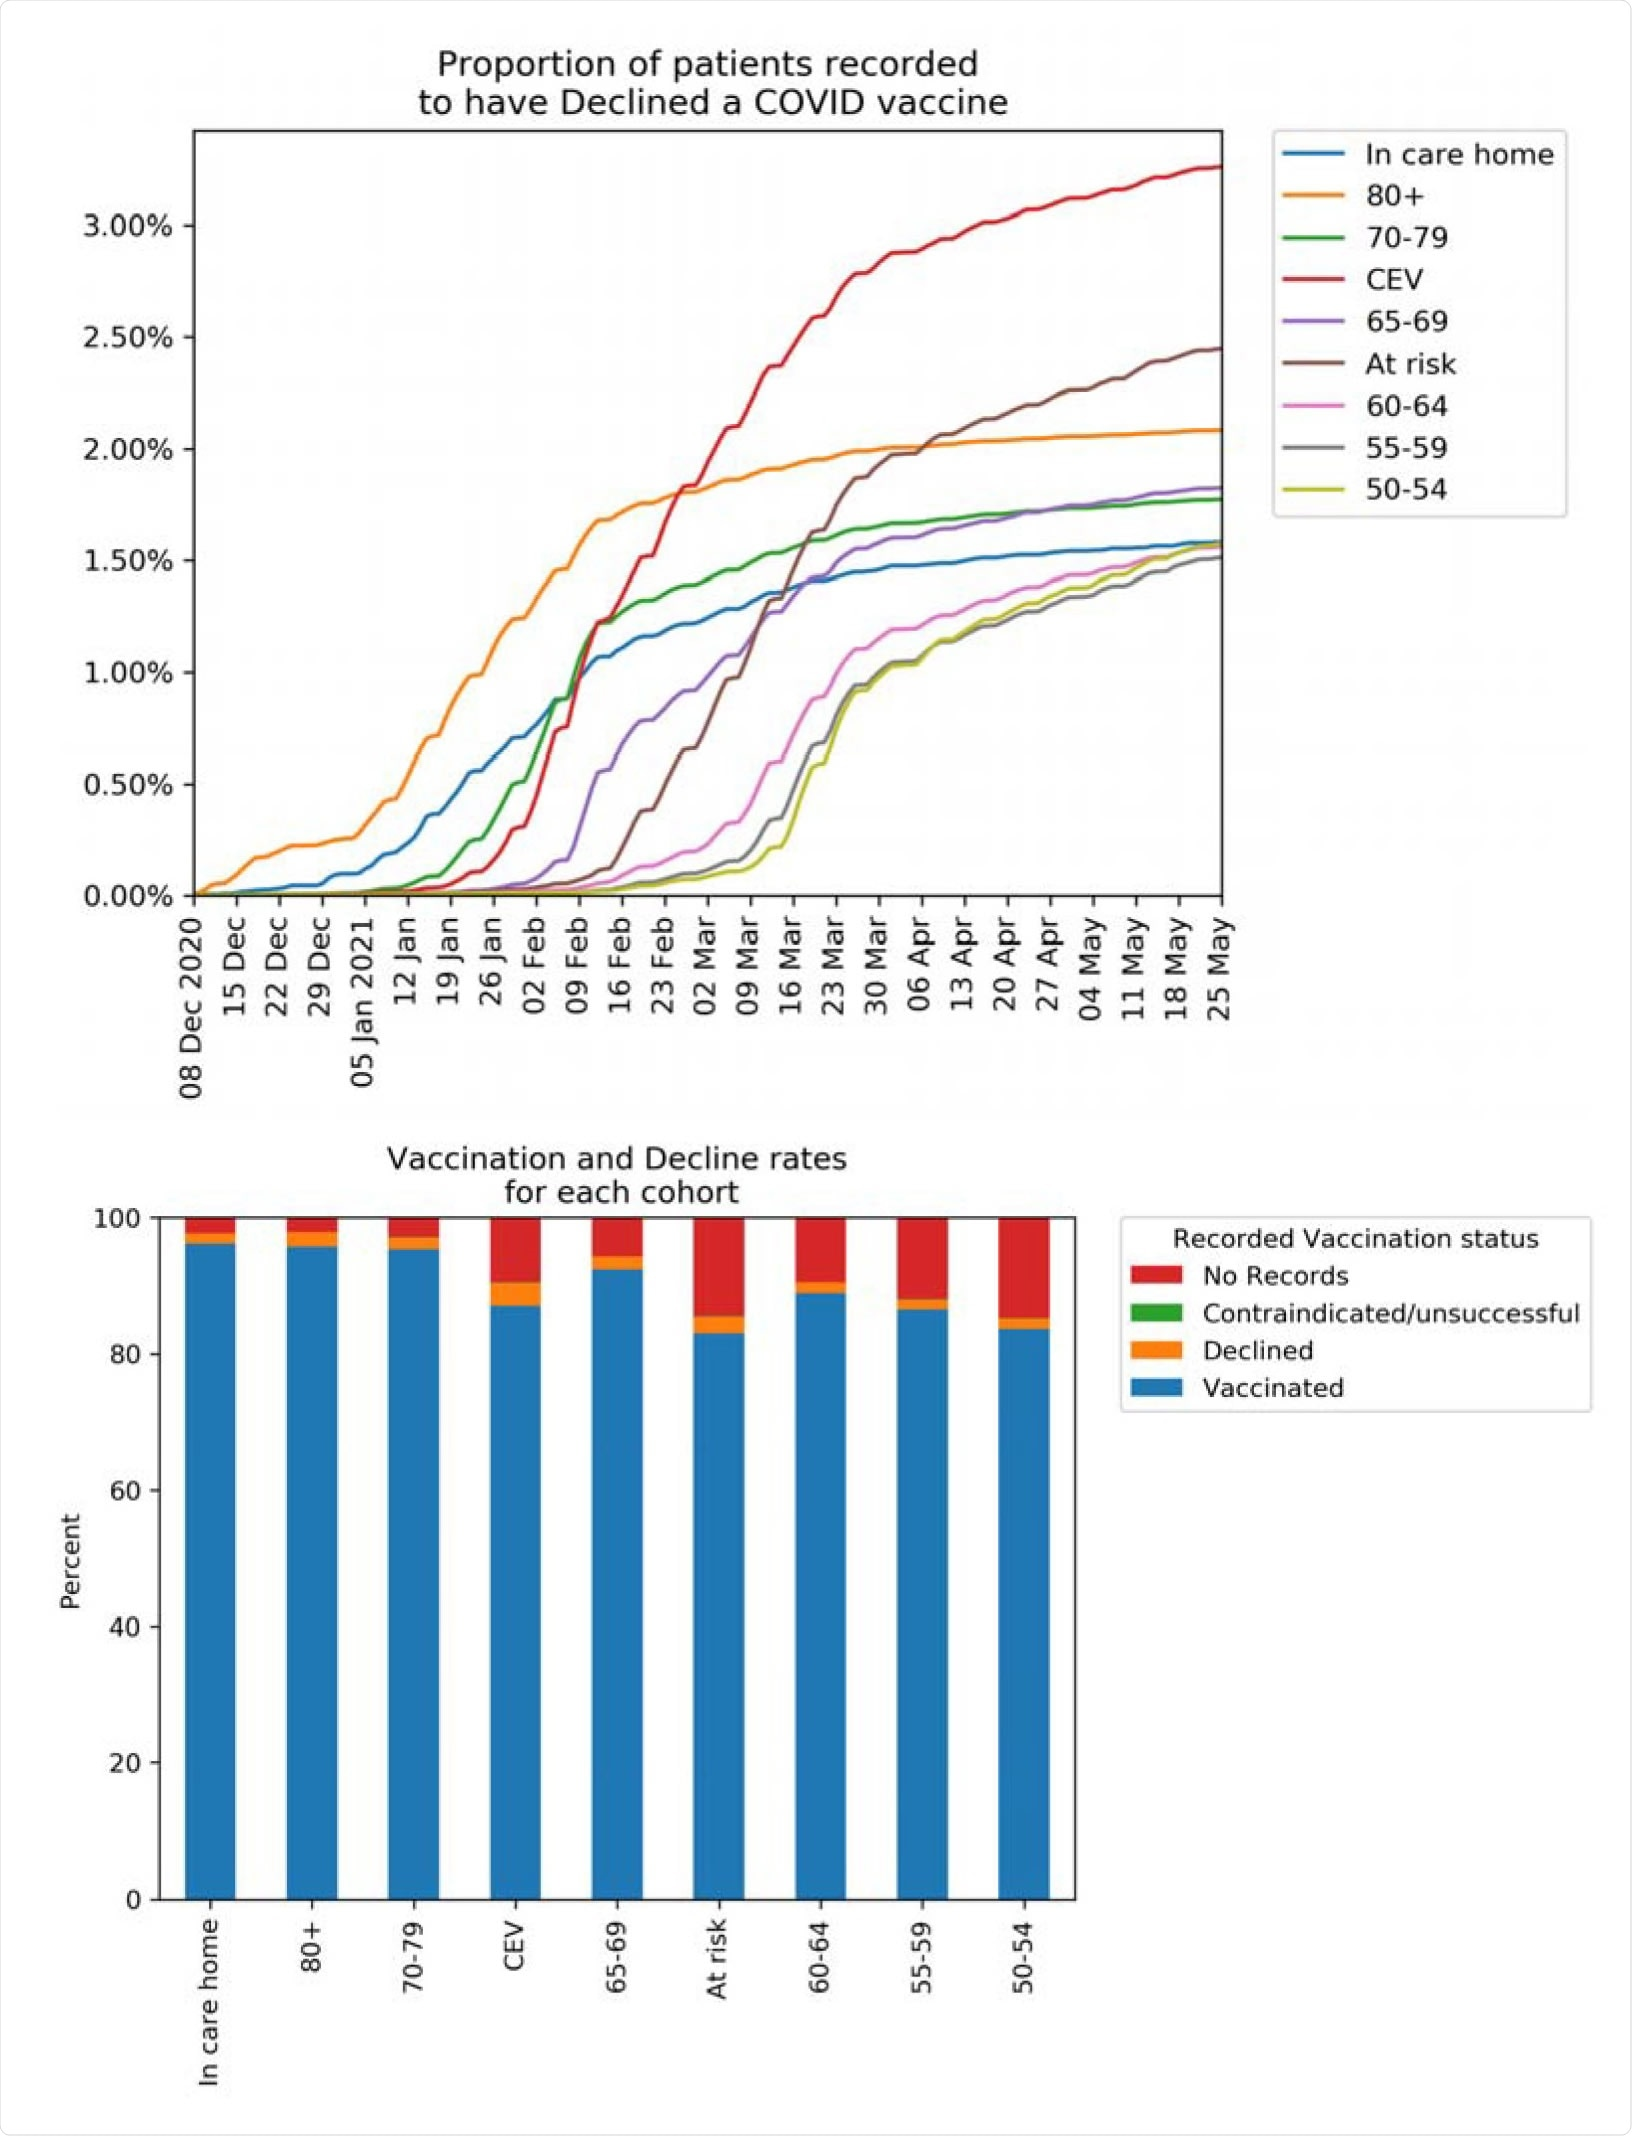 """Recorded vaccination status of patients in OpenSAFELY up to May 25th 2021. (a) Cumulative percentage of patients in each priority group recorded as declining a COVID-19 vaccination and remaining unvaccinated. (b) Recorded COVID-19 vaccination status for patients by priority group. """"Declined"""" excludes patients with a recorded vaccination. """"Vaccinated"""" includes those previously recorded as declining."""